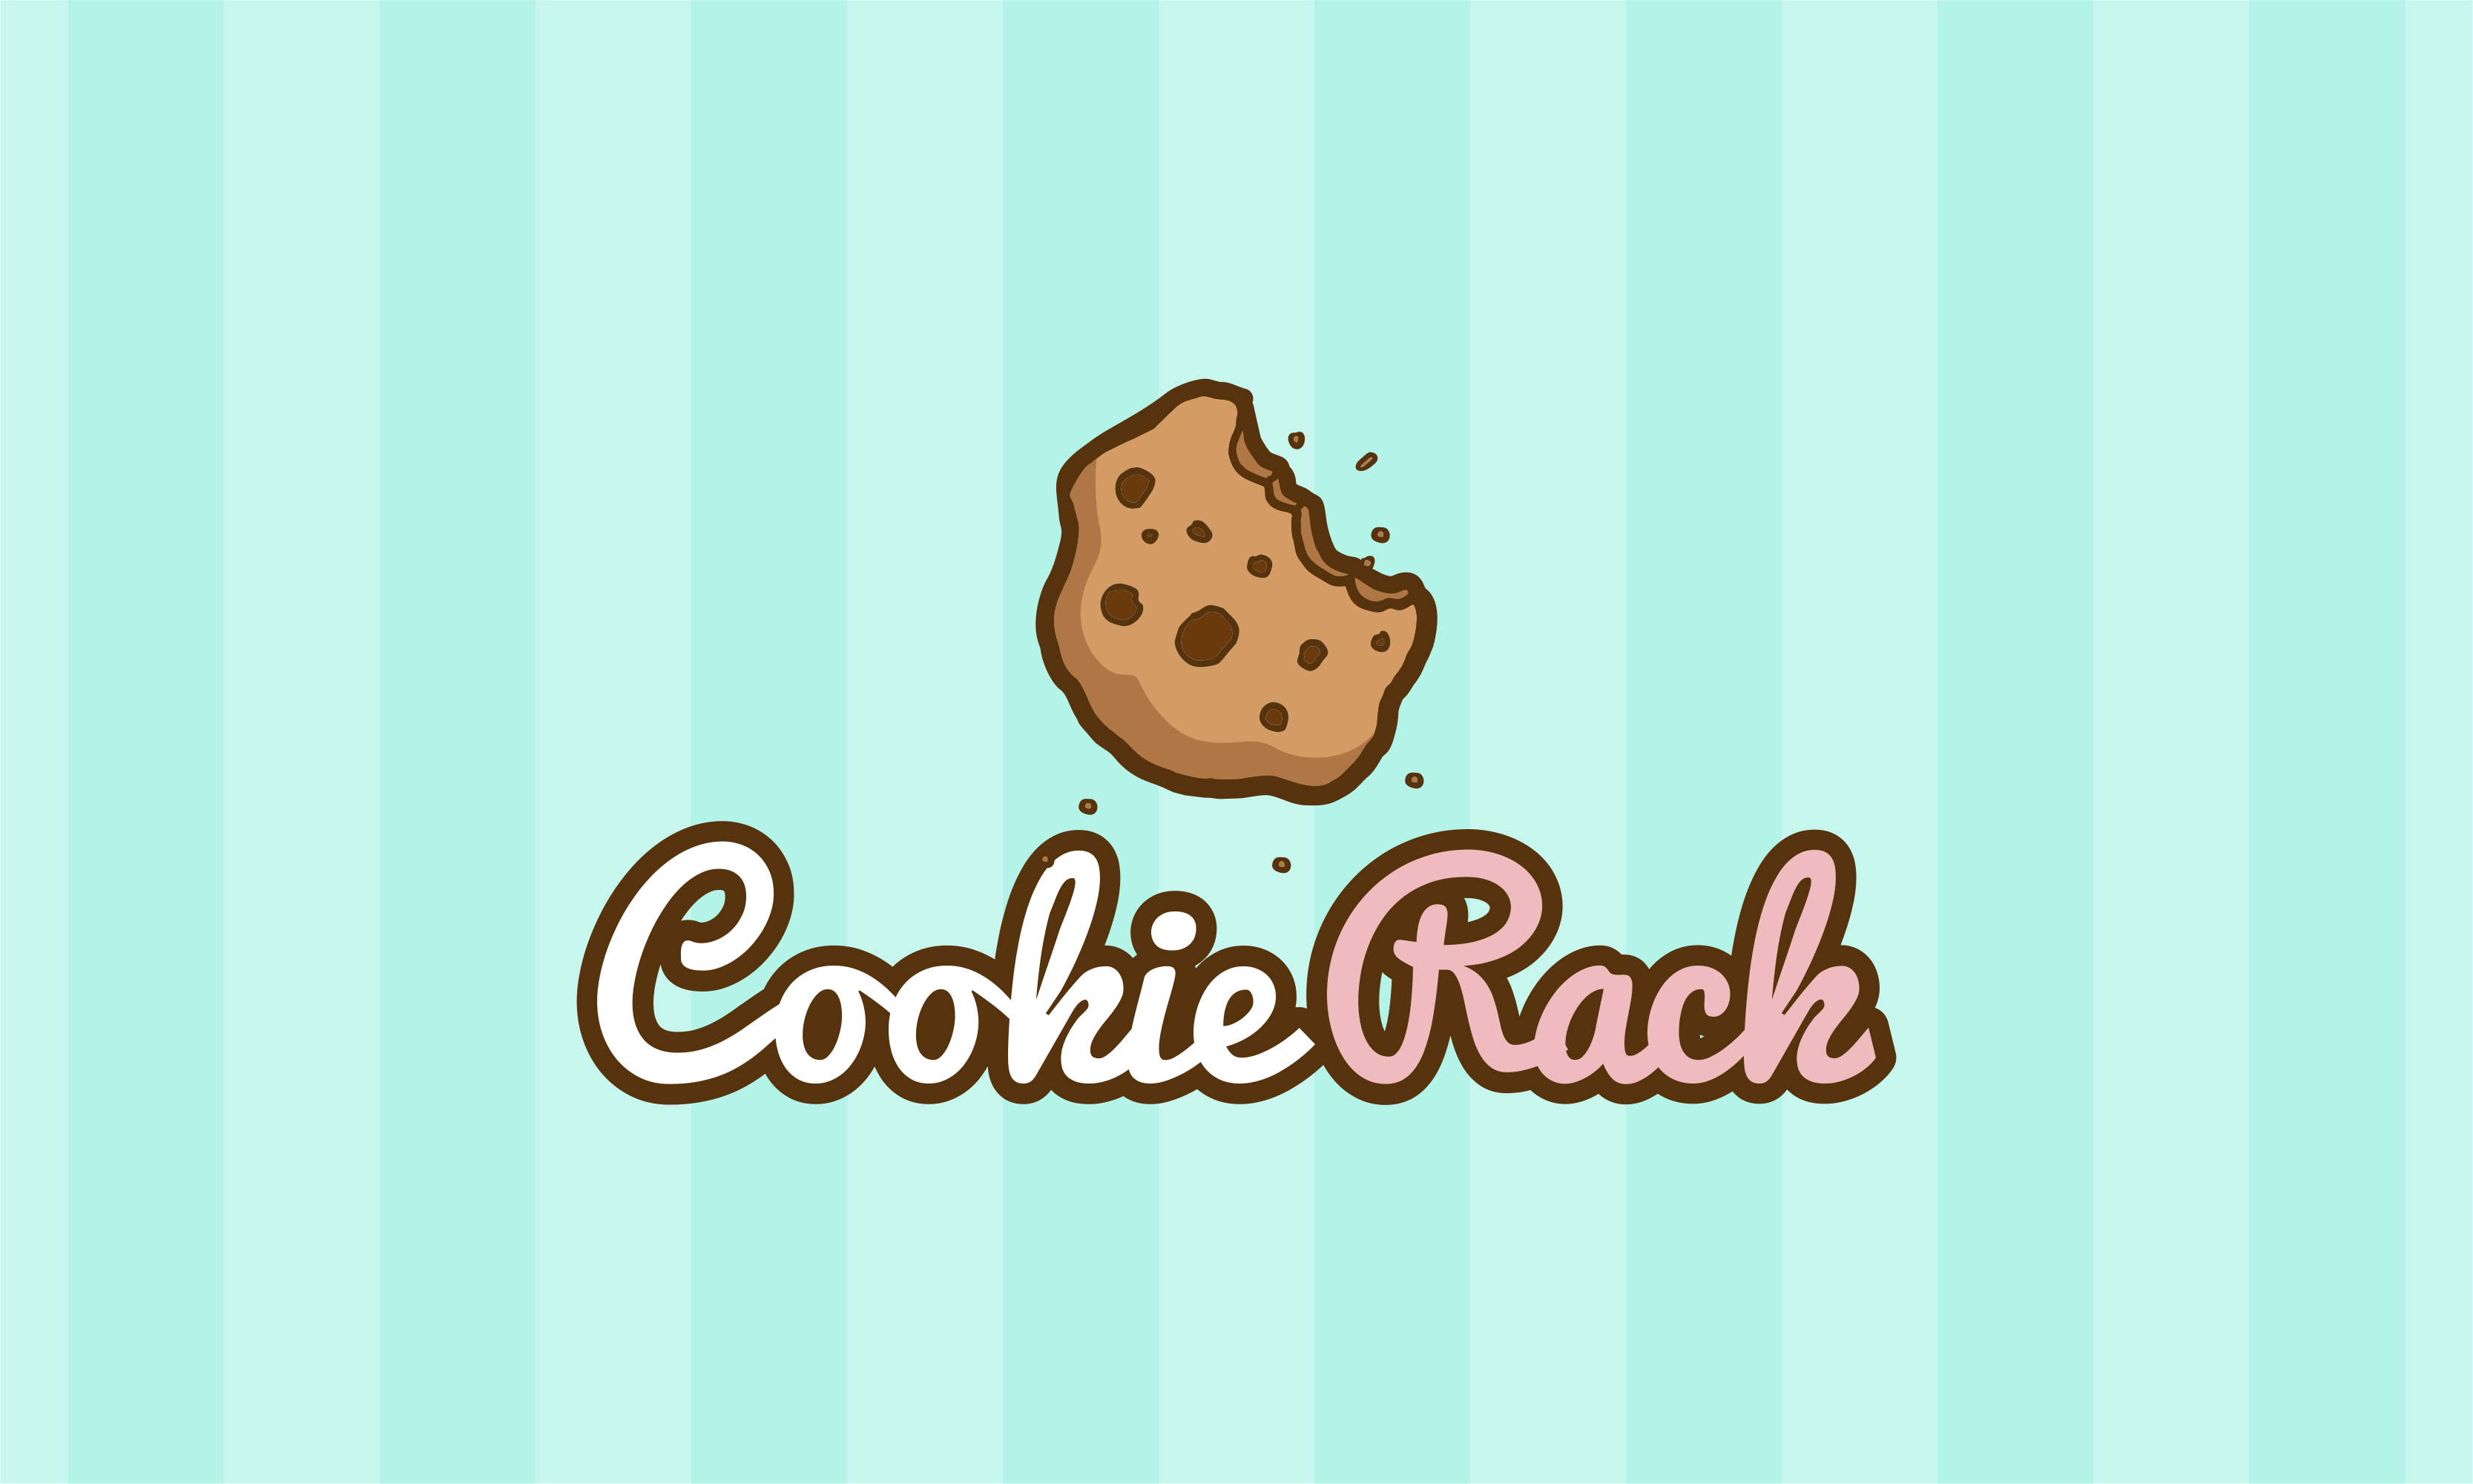 Cookierack - Potential business name for sale